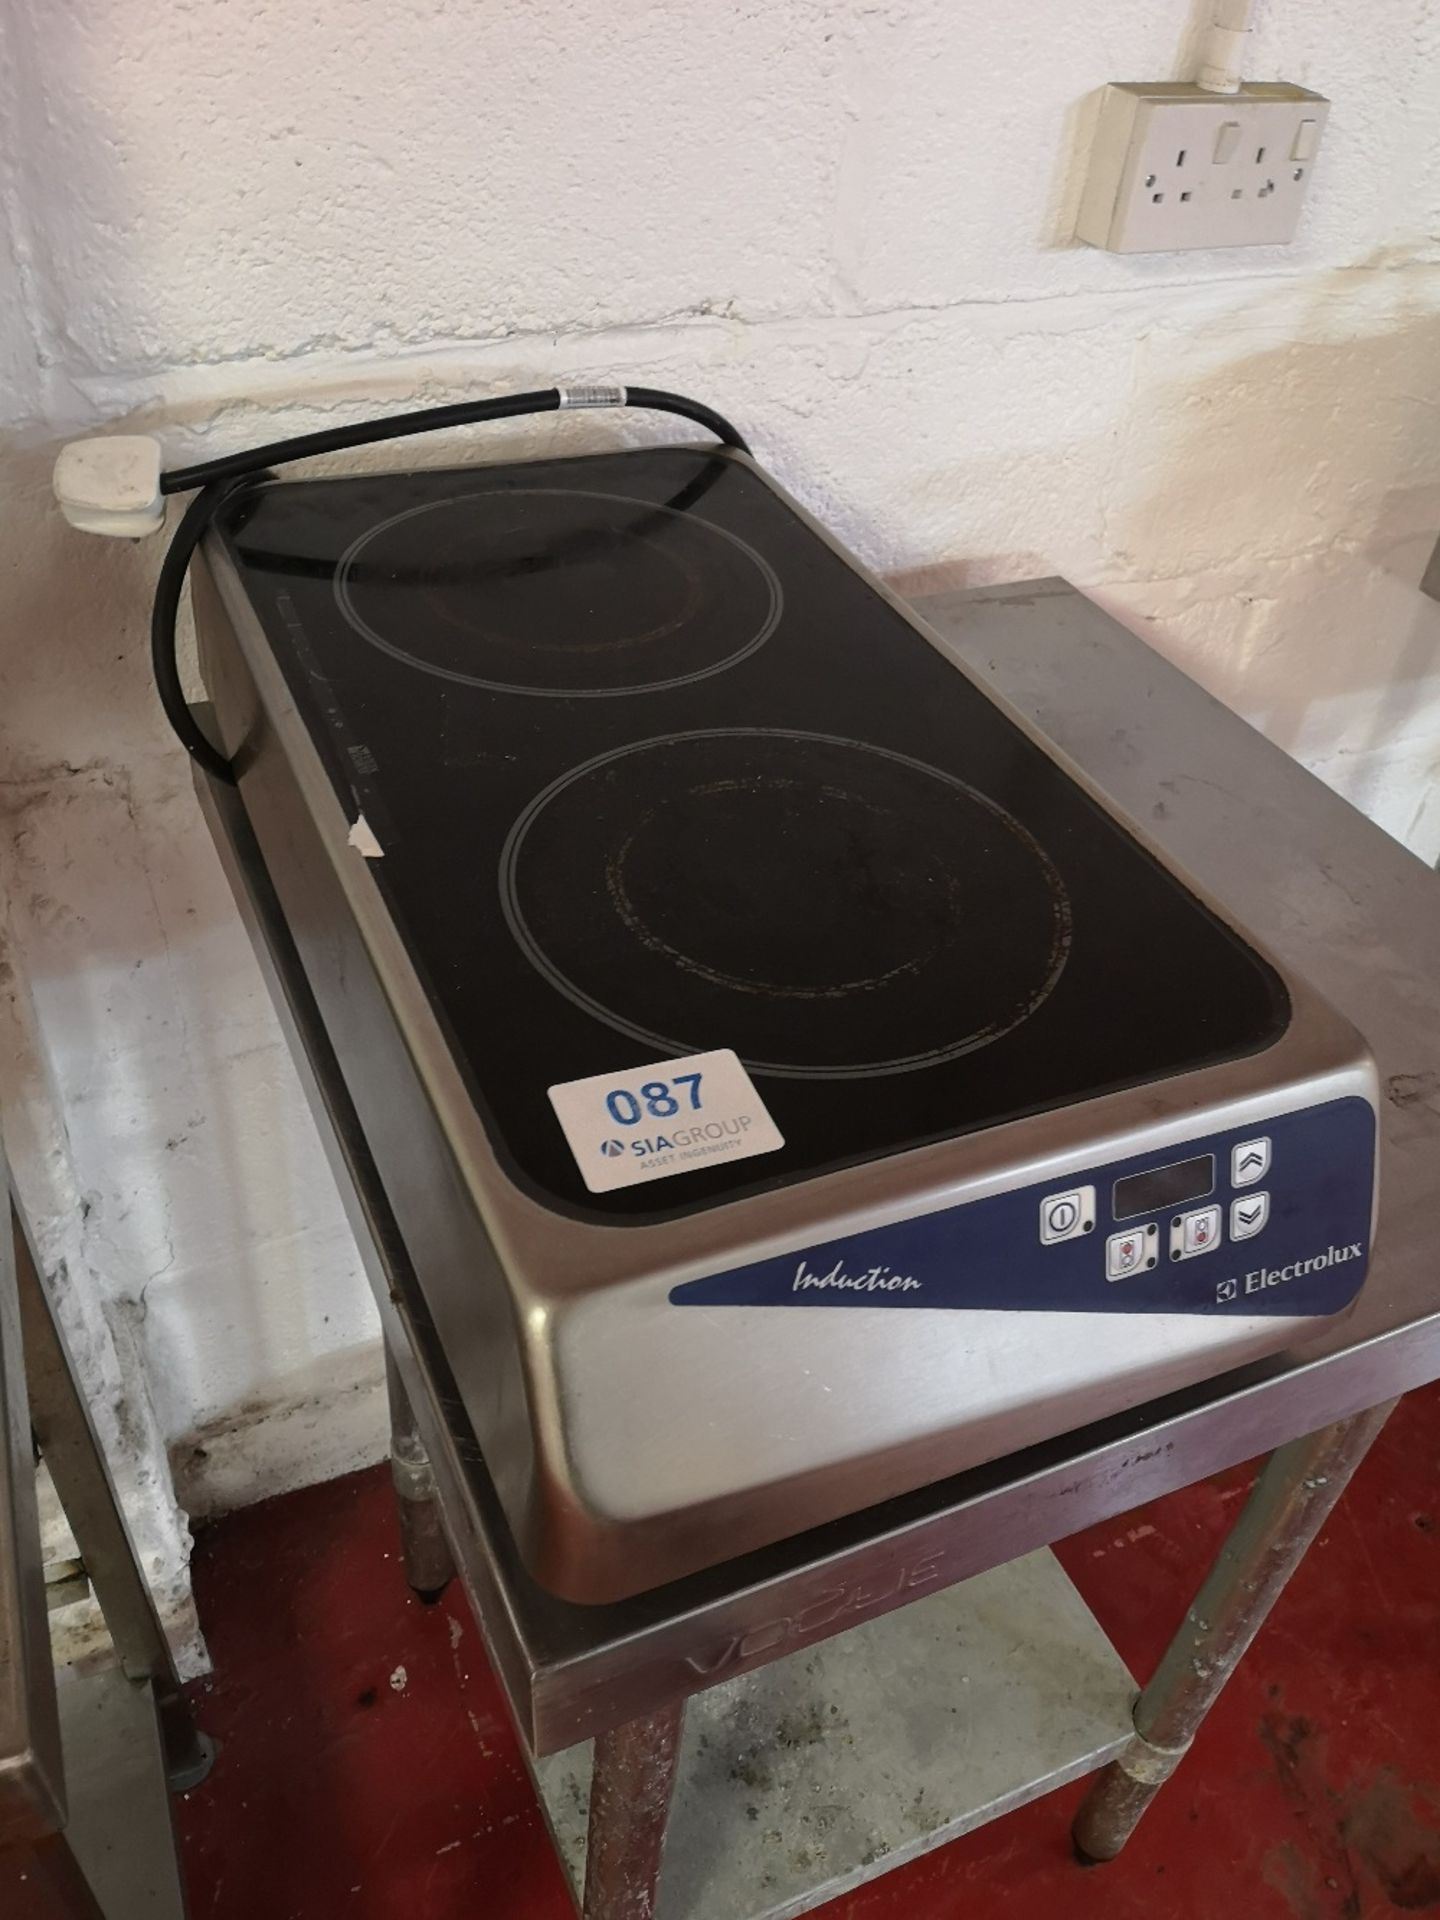 Electrolux CE070 Twin Ring Induction Hob - Image 3 of 4